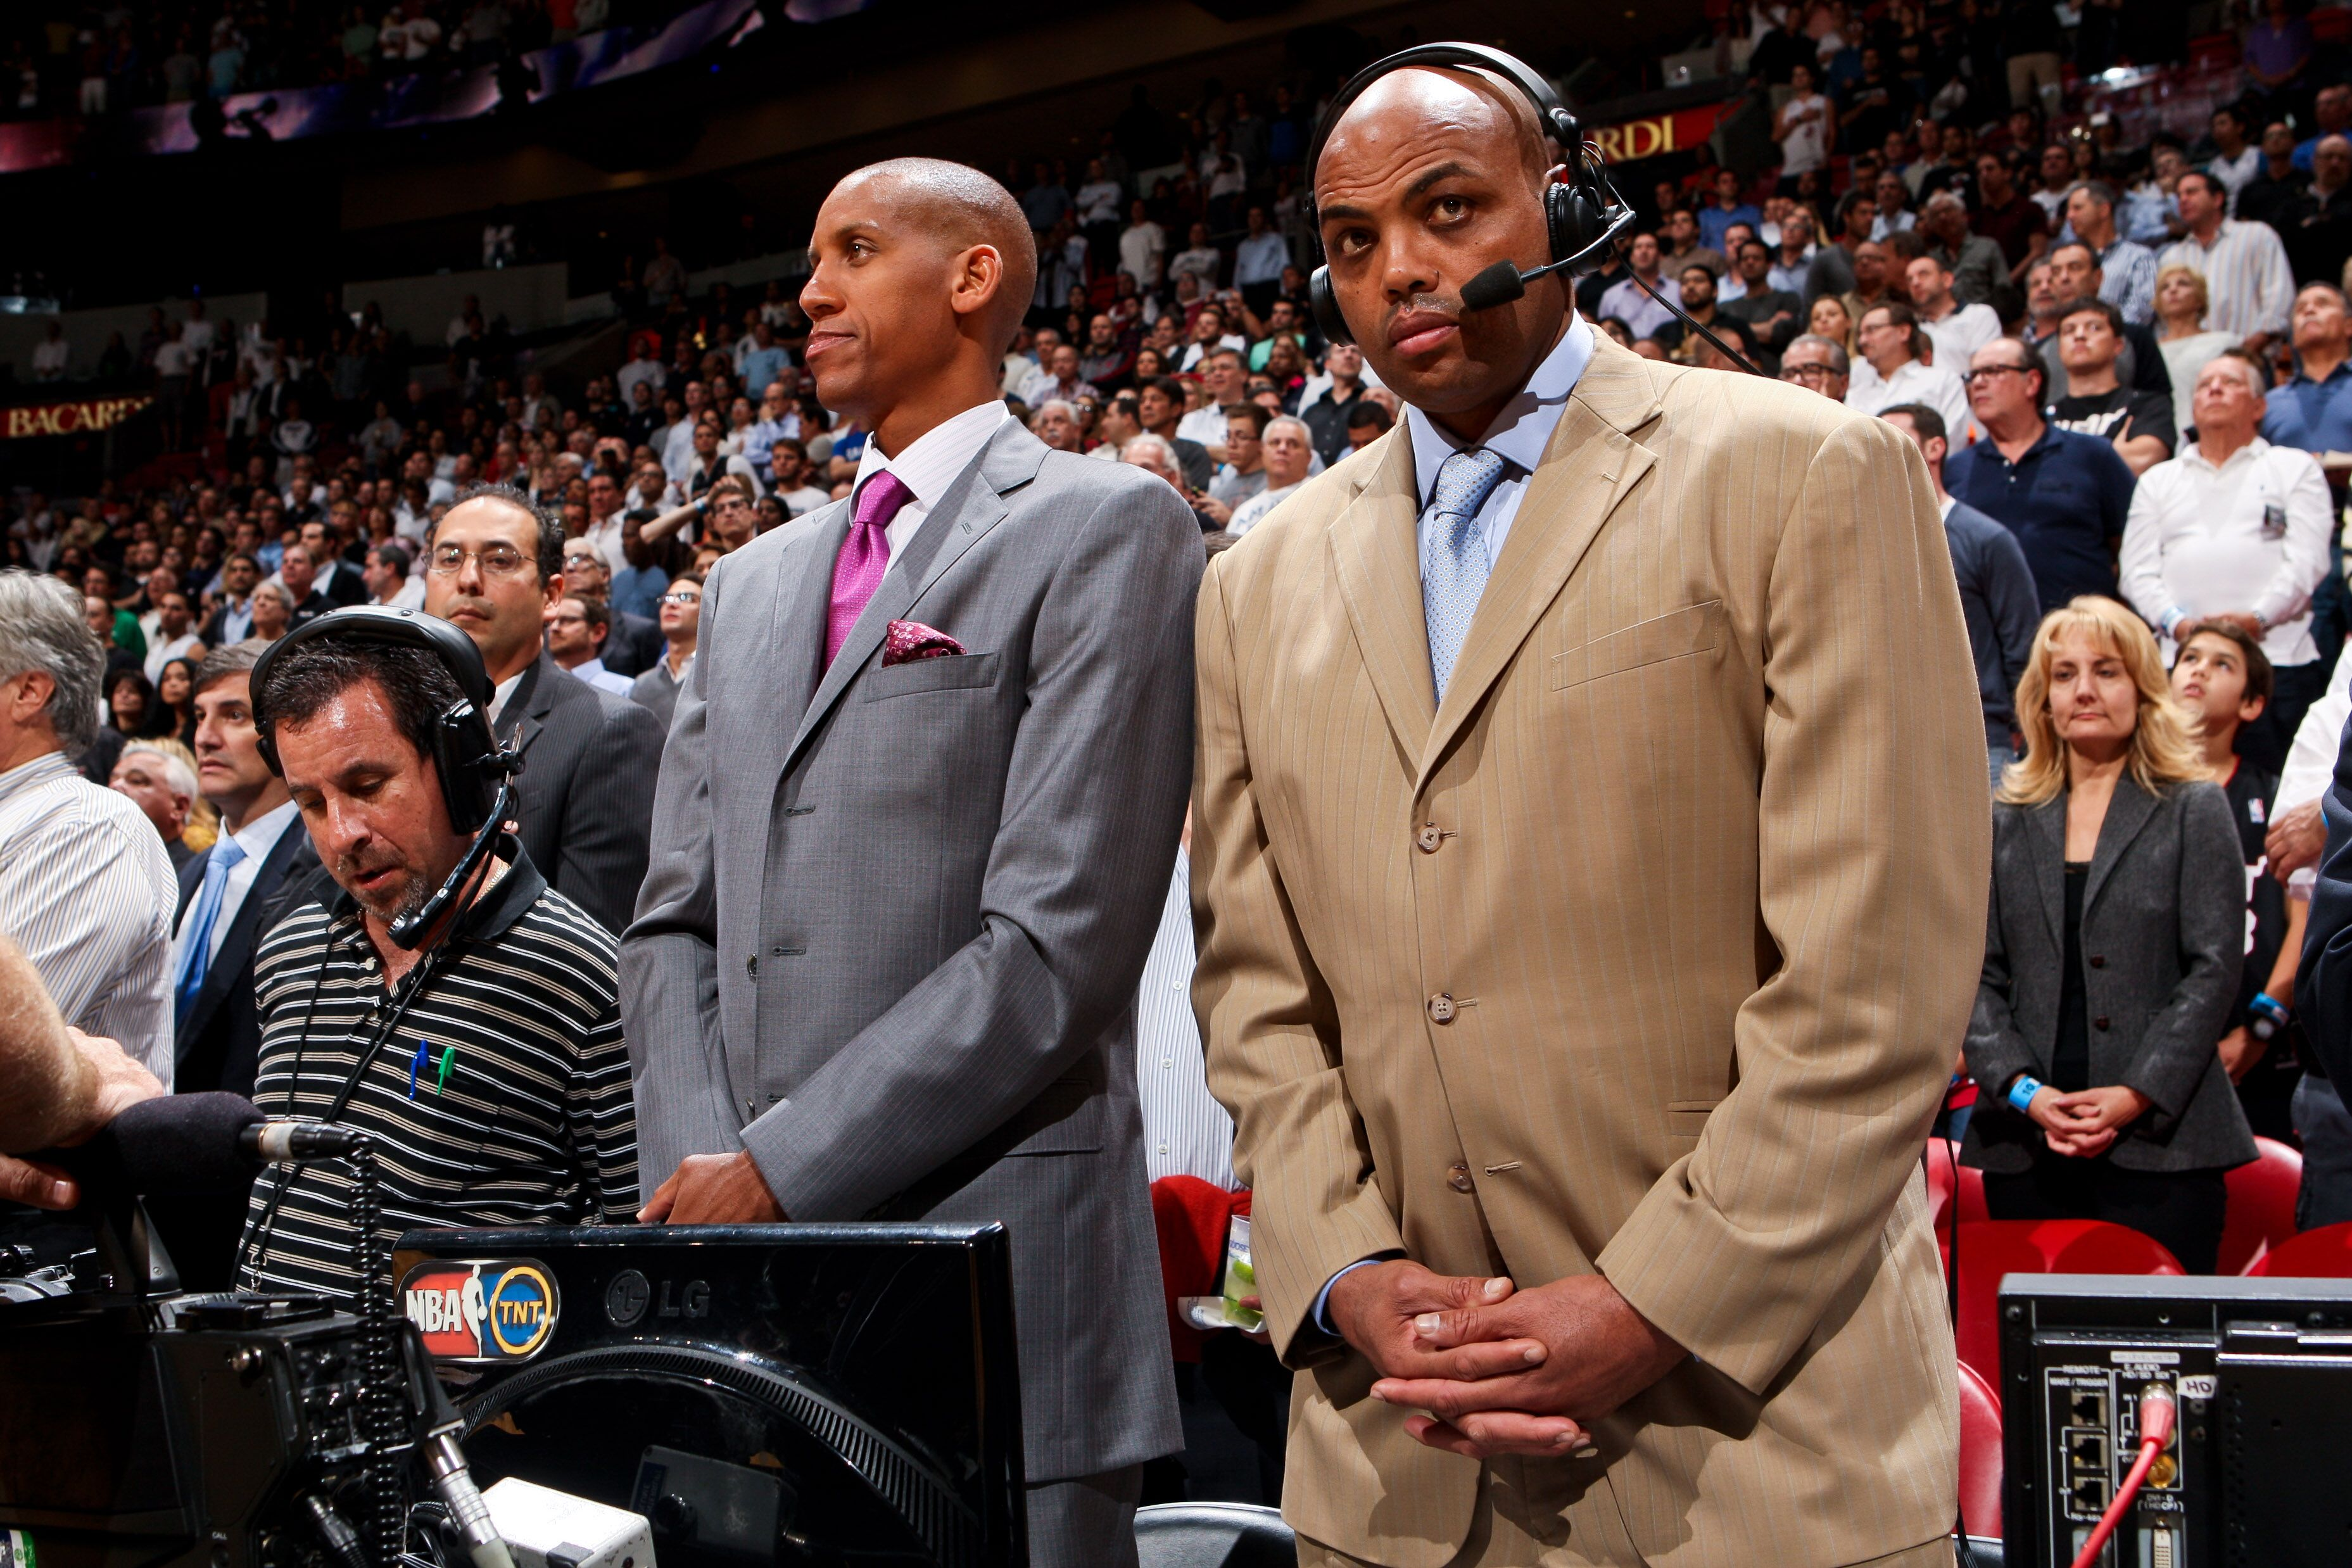 MIAMI, FL - NOVEMBER 29: Former NBA players and current TNT commentators Reggie Miller, left, and Charles Barkley listen to the National Anthem before a game between the San Antonio Spurs and Miami Heat against on November 29, 2012 at American Airlines Arena in Miami, Florida. NOTE TO USER: User expressly acknowledges and agrees that, by downloading and/or using this photograph, user is consenting to the terms and conditions of the Getty Images License Agreement. Mandatory copyright notice: Copyright NBAE 2012 (Photo by Issac Baldizon/NBAE via Getty Images)